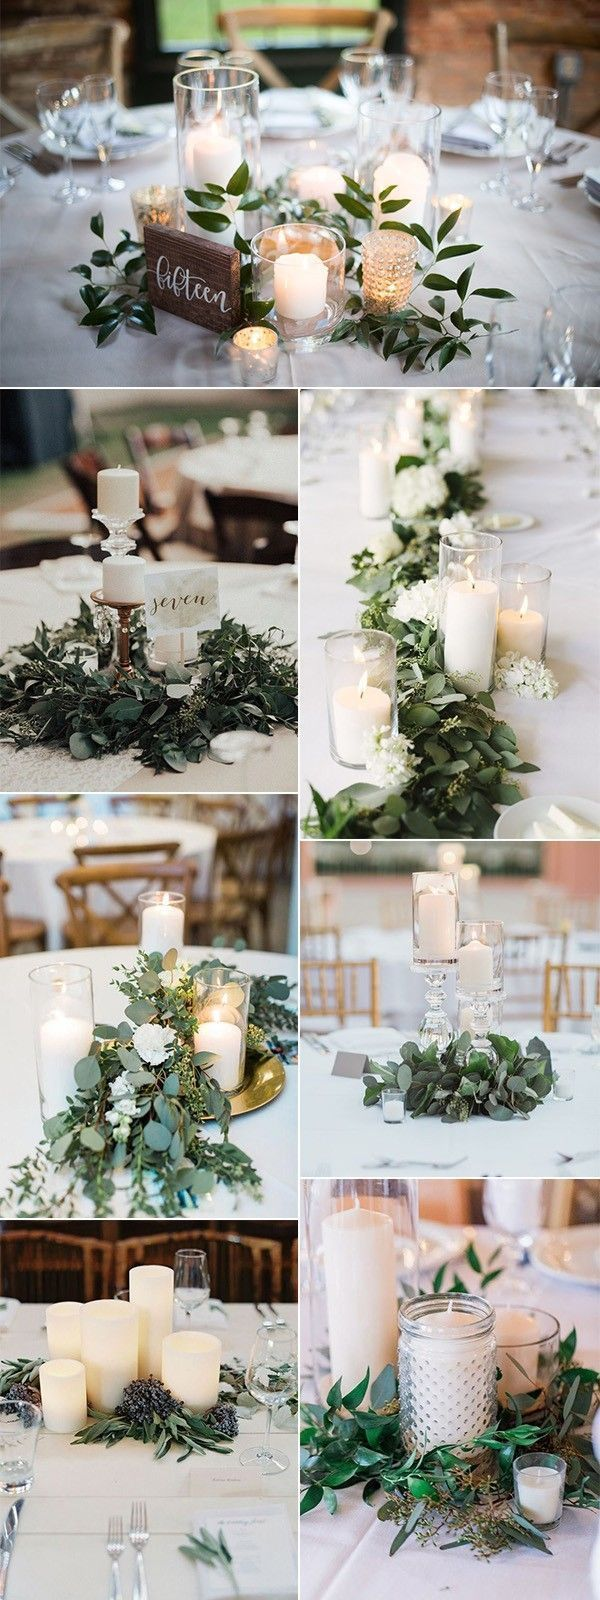 20 Budget Friendly Simple Wedding Centerpiece Ideas with Candles – Hochzeitskleid -  20 Budget Friendly Simple Wedding Centerpiece Ideas with Candles – Hochzeitskleid  - #AsiaTravel #budget #BudgetTravel #Candles #Centerpiece #CultureTravel #friendly #Hochzeitskleid #ideas #NightlifeTravel #RoadTrips #simple #TravelTips #Wedding